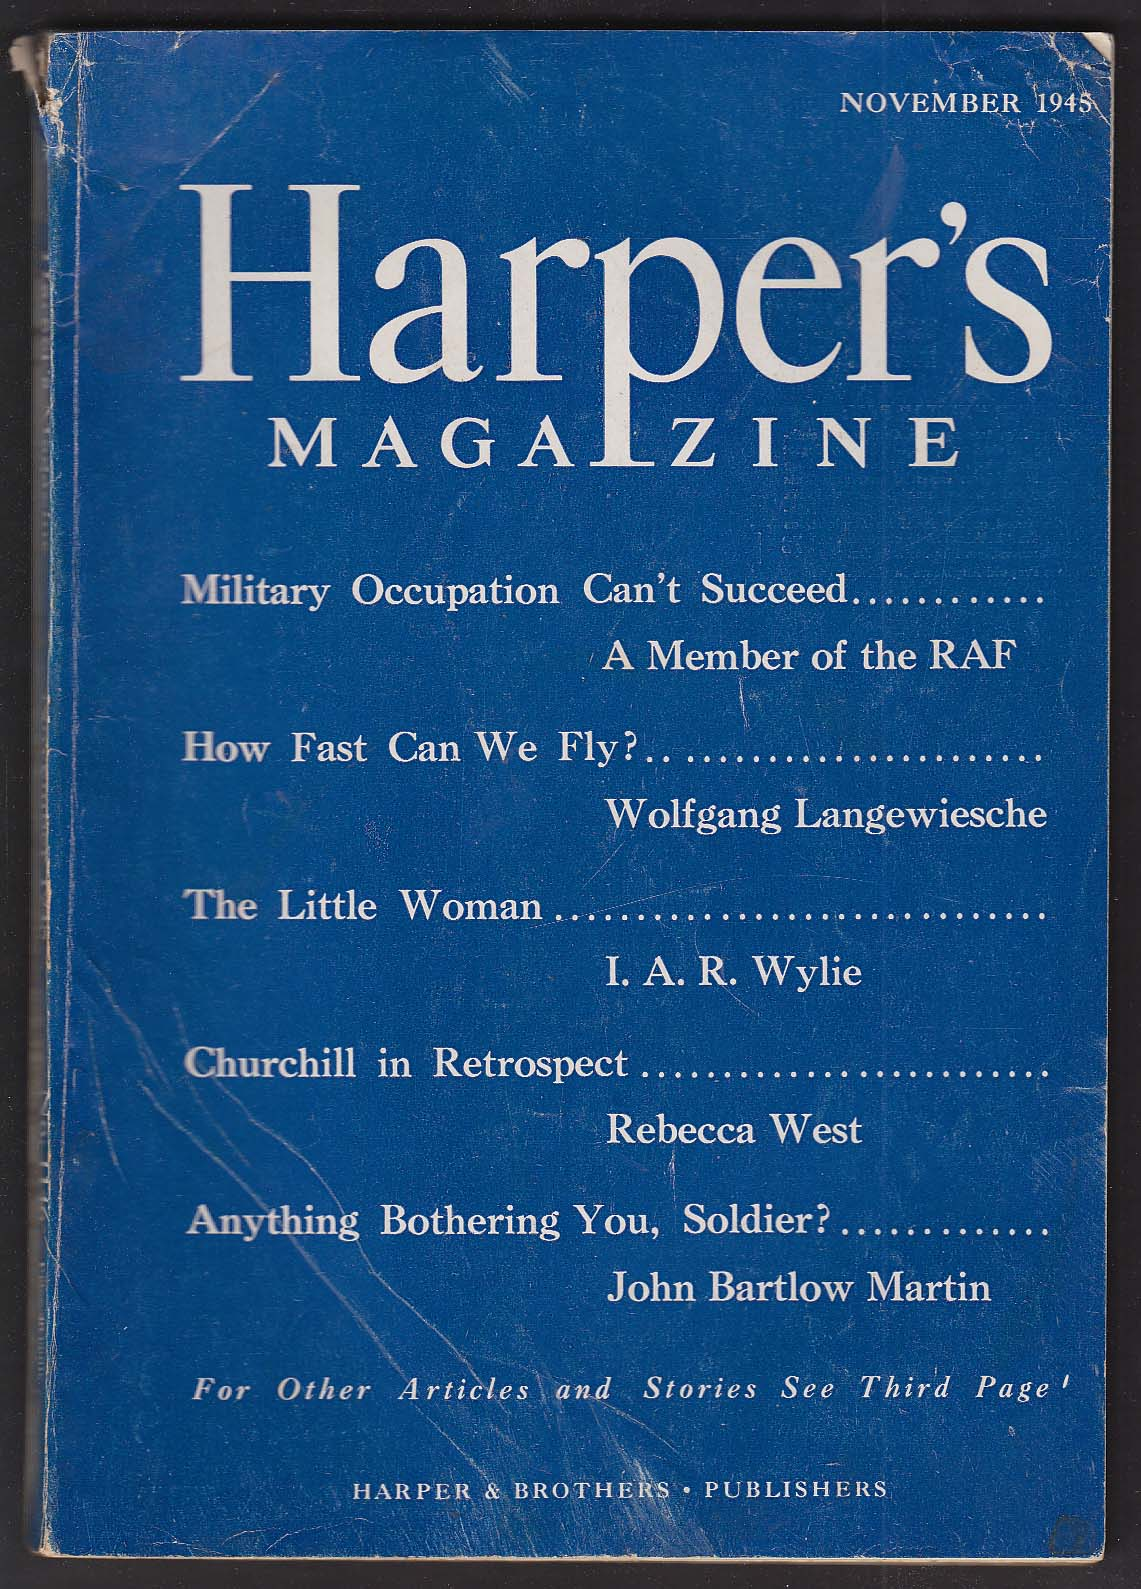 HARPER'S Military Occupation Can't Succeed; Winston Churchill + 11 1945